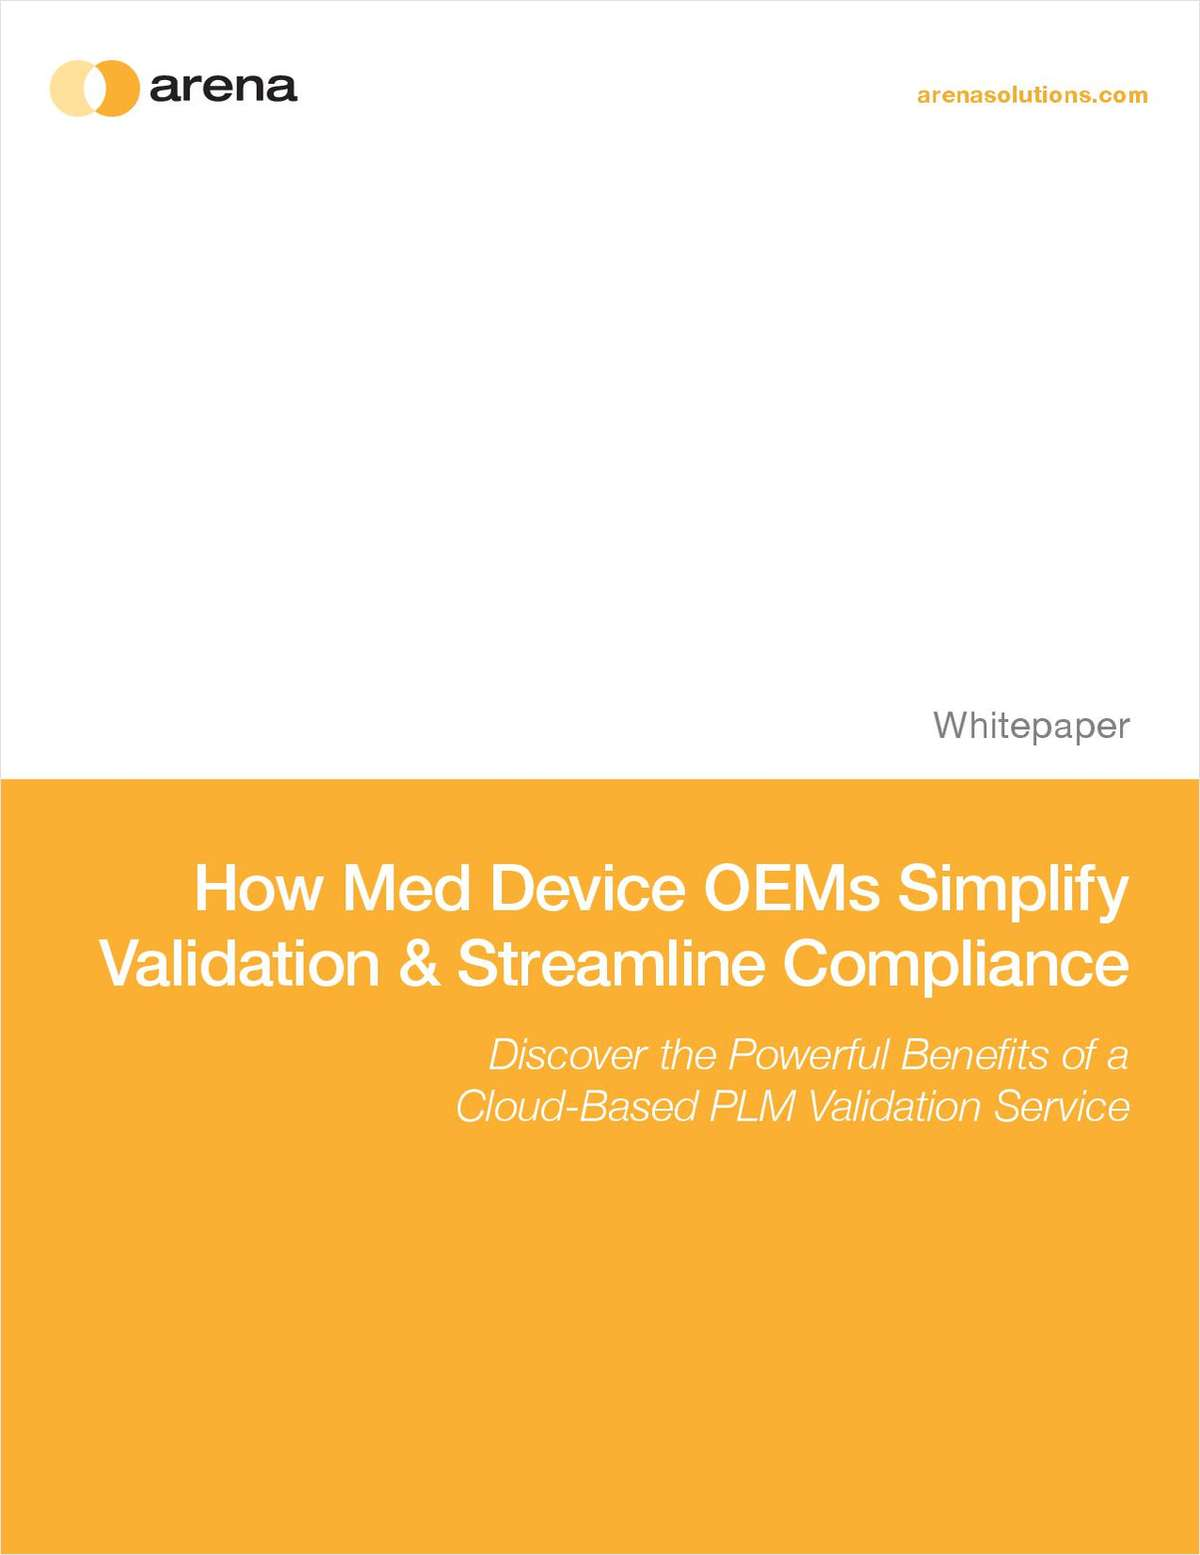 How Med Device OEMs Simplify Validation & Streamline Compliance